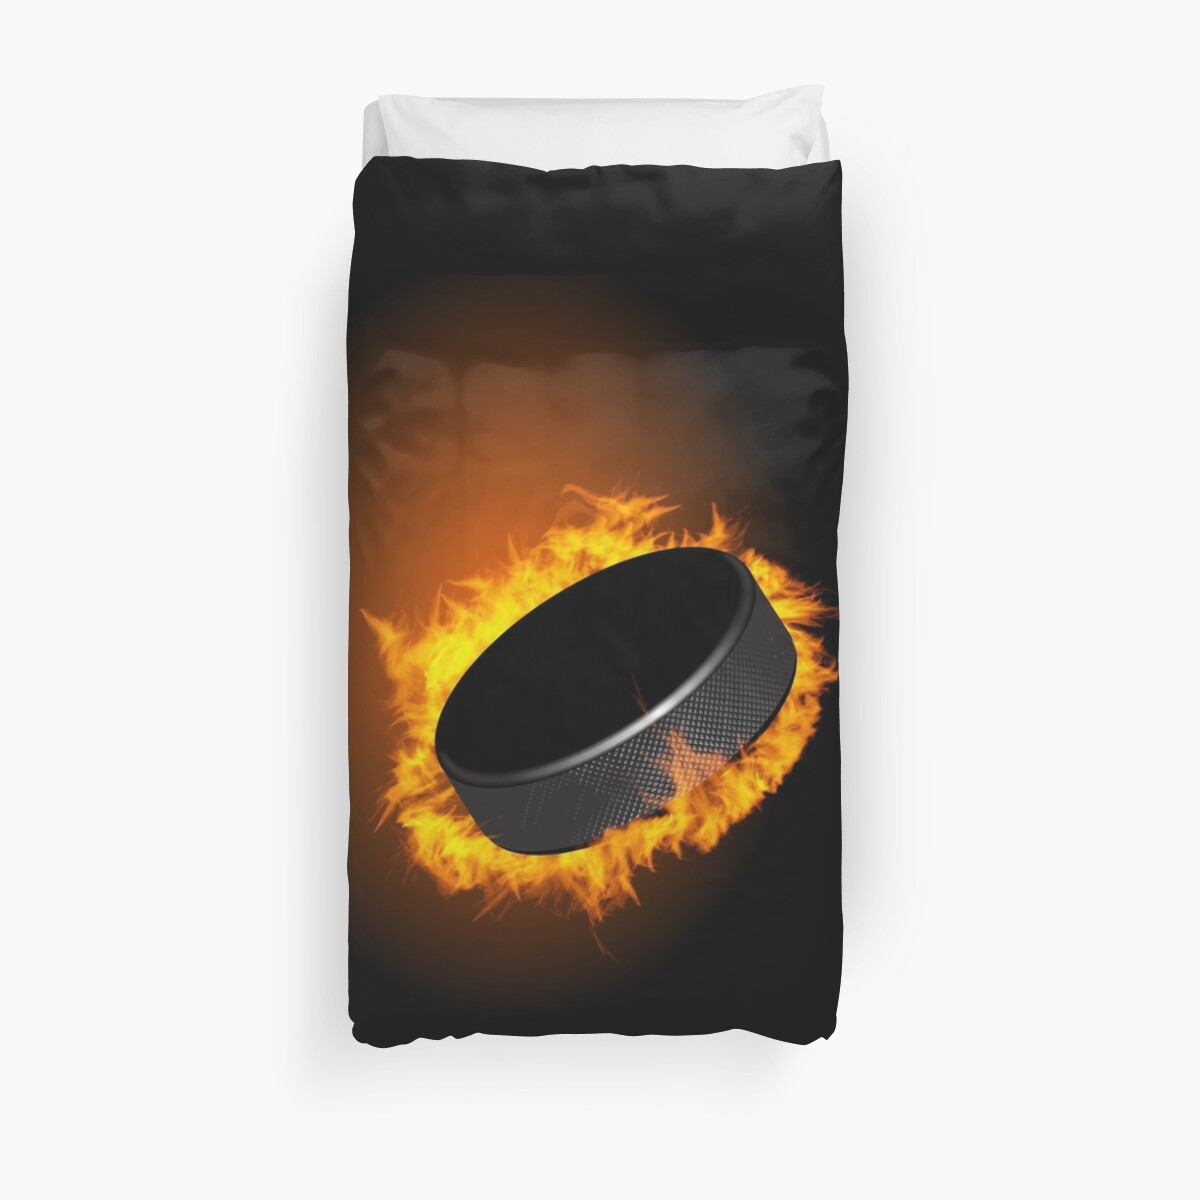 Burning Hockey Puck  by CroDesign